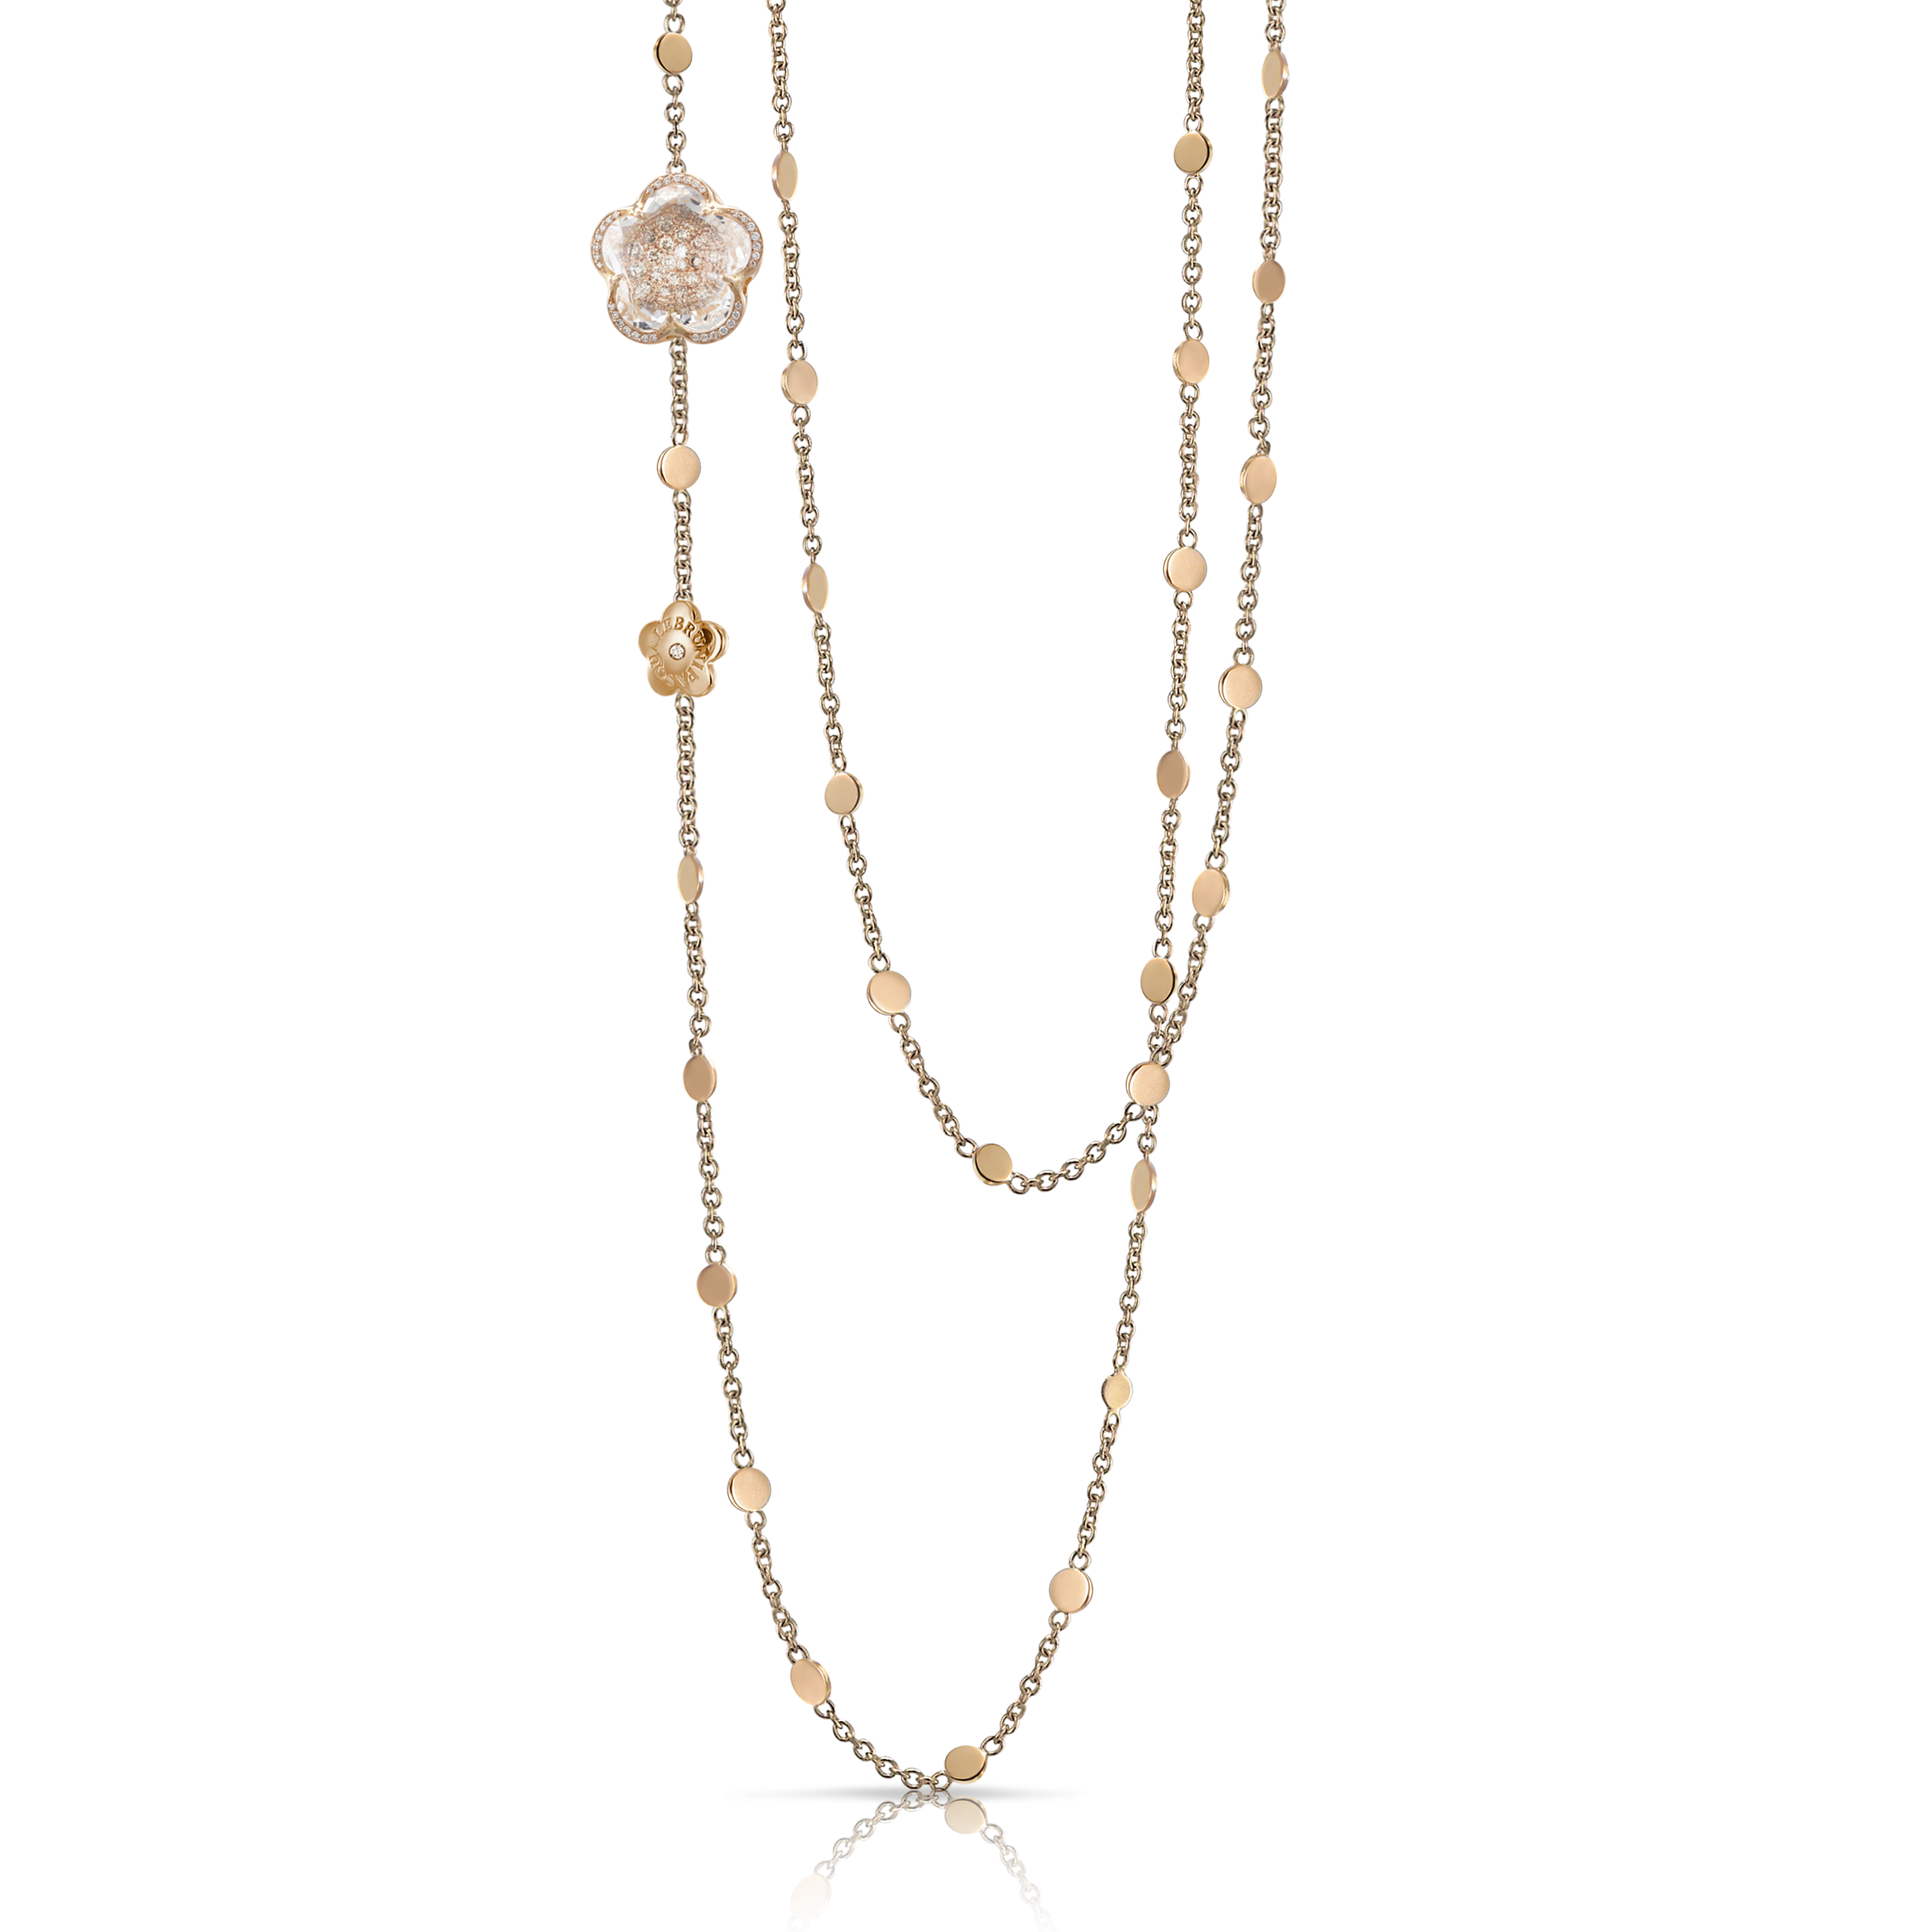 NEW 18k Rose Gold Bon Ton Necklace with Rock Crystal and Diamonds